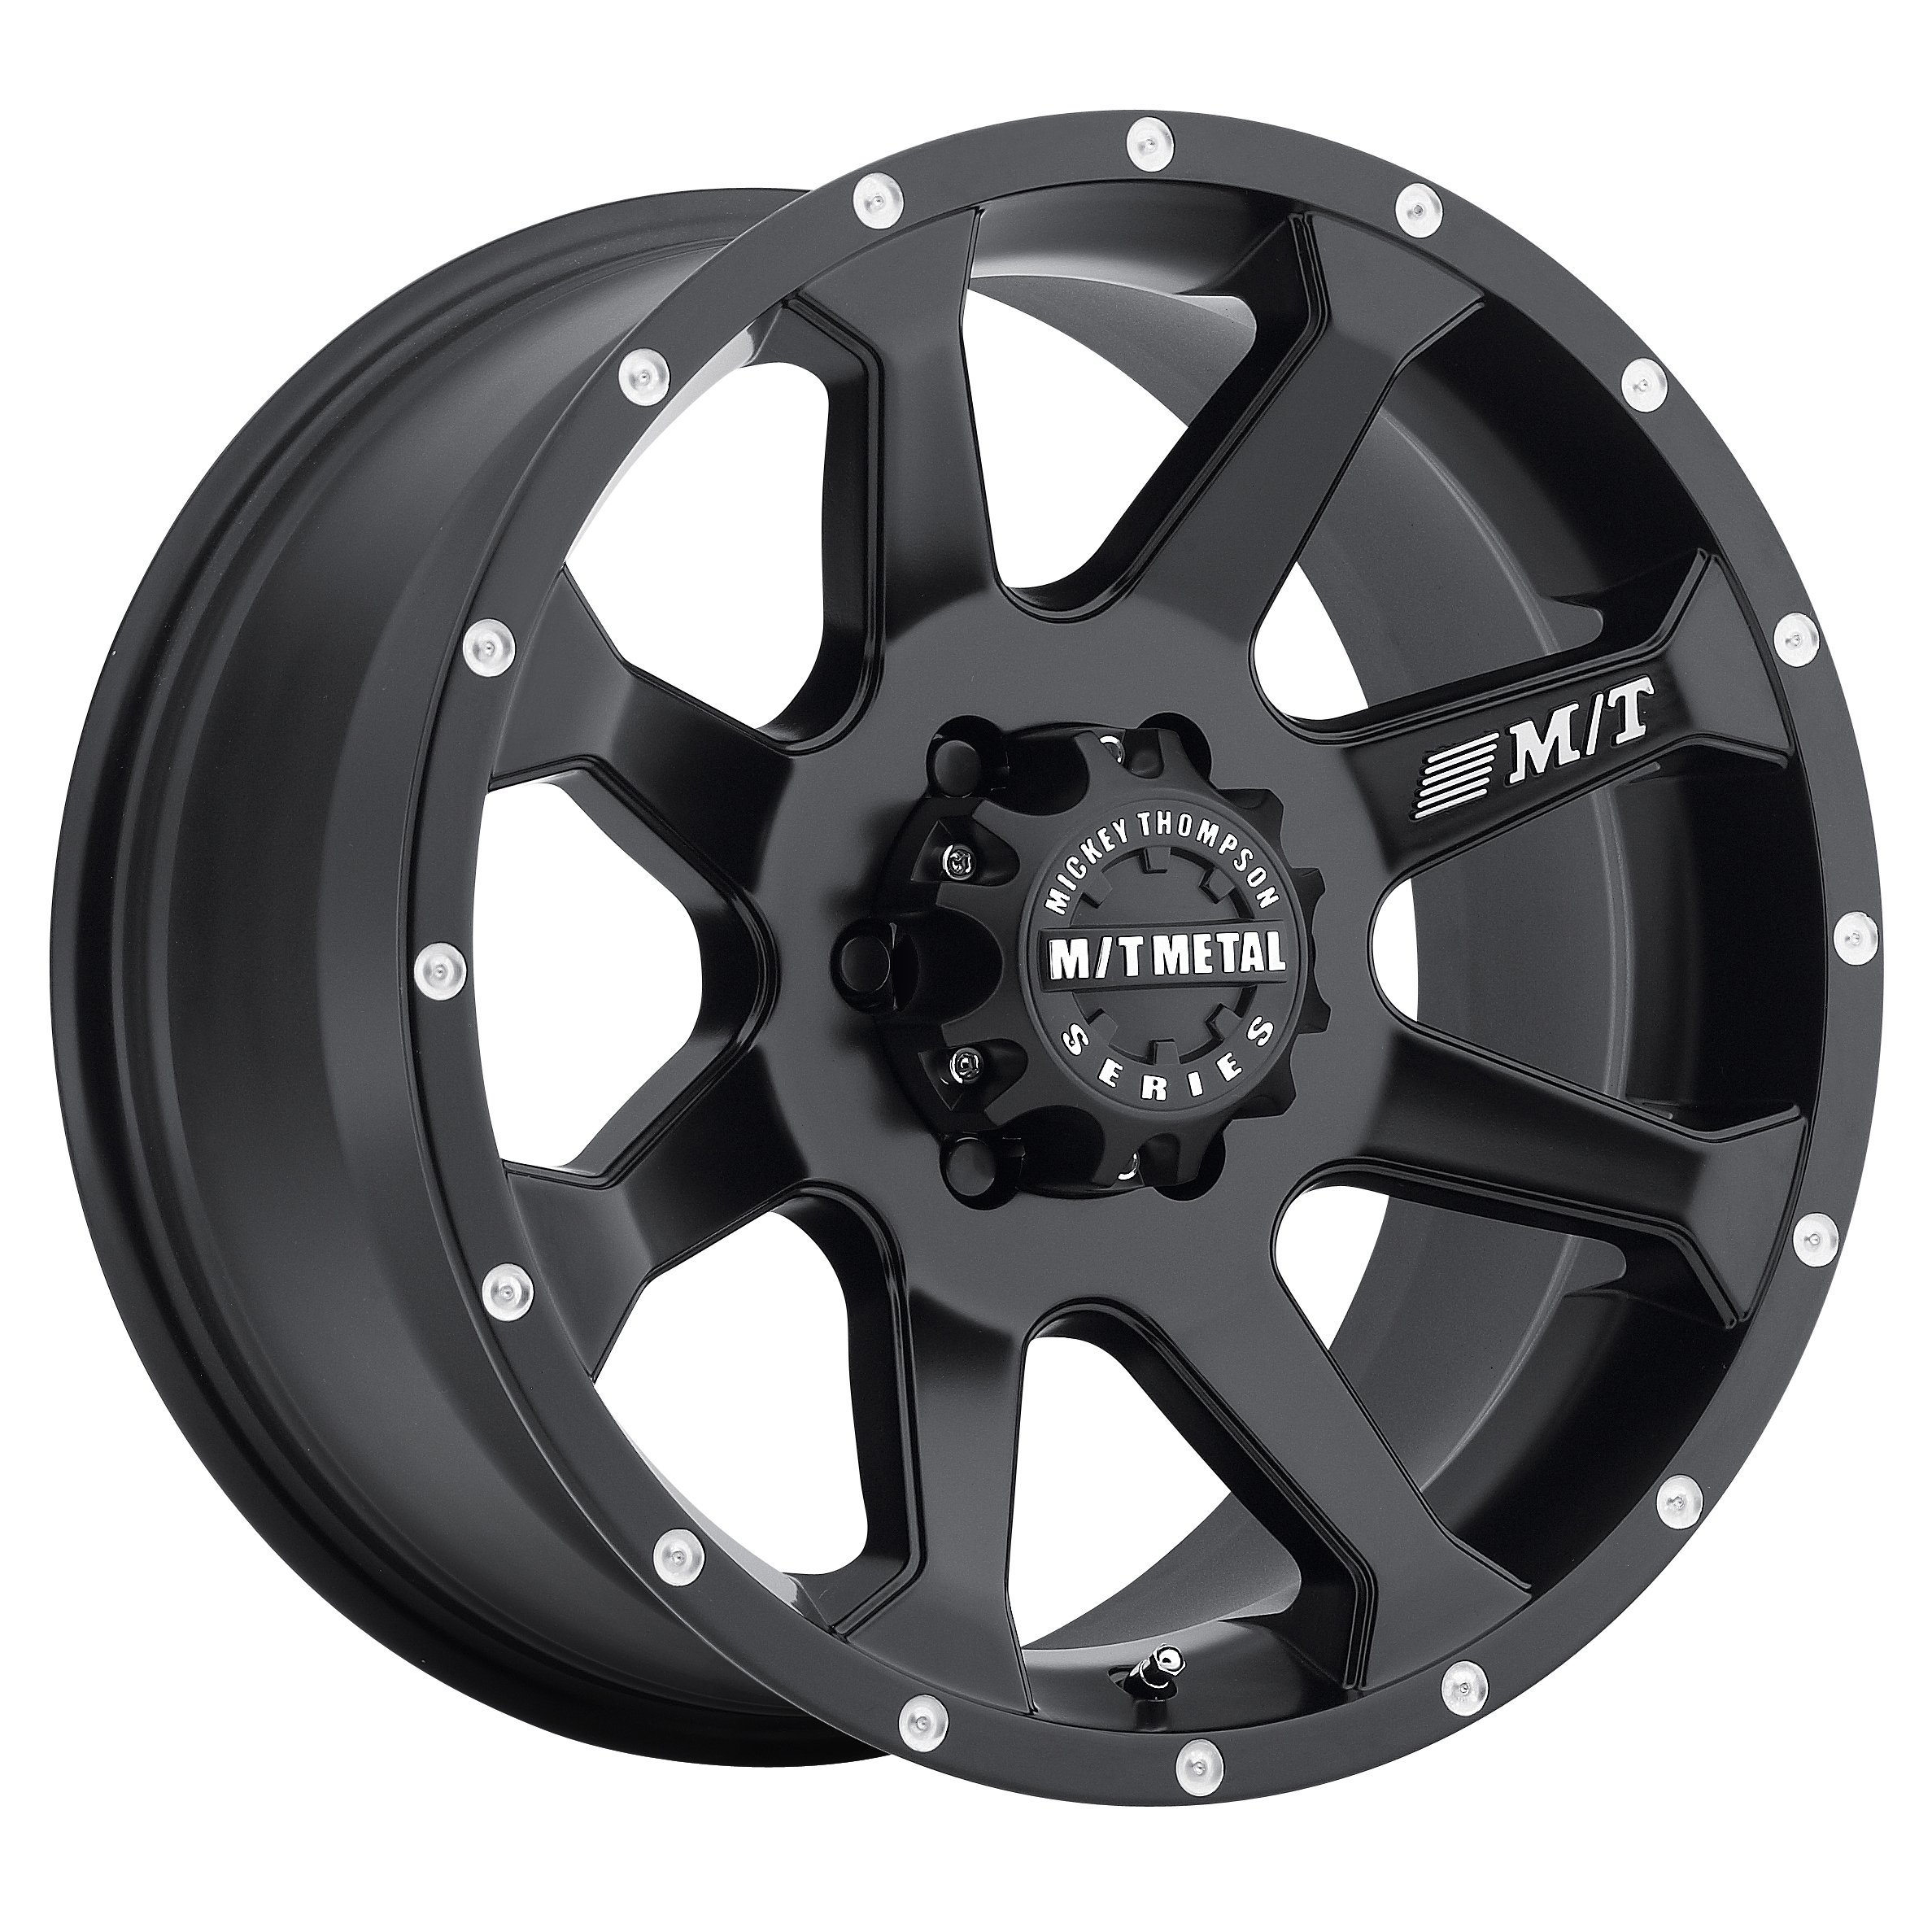 Mickey Thompson M/T Metal Series MM-366 Matte Black Wheel with Milled Lip (20x9''/5x5'') -12 millimeters offset